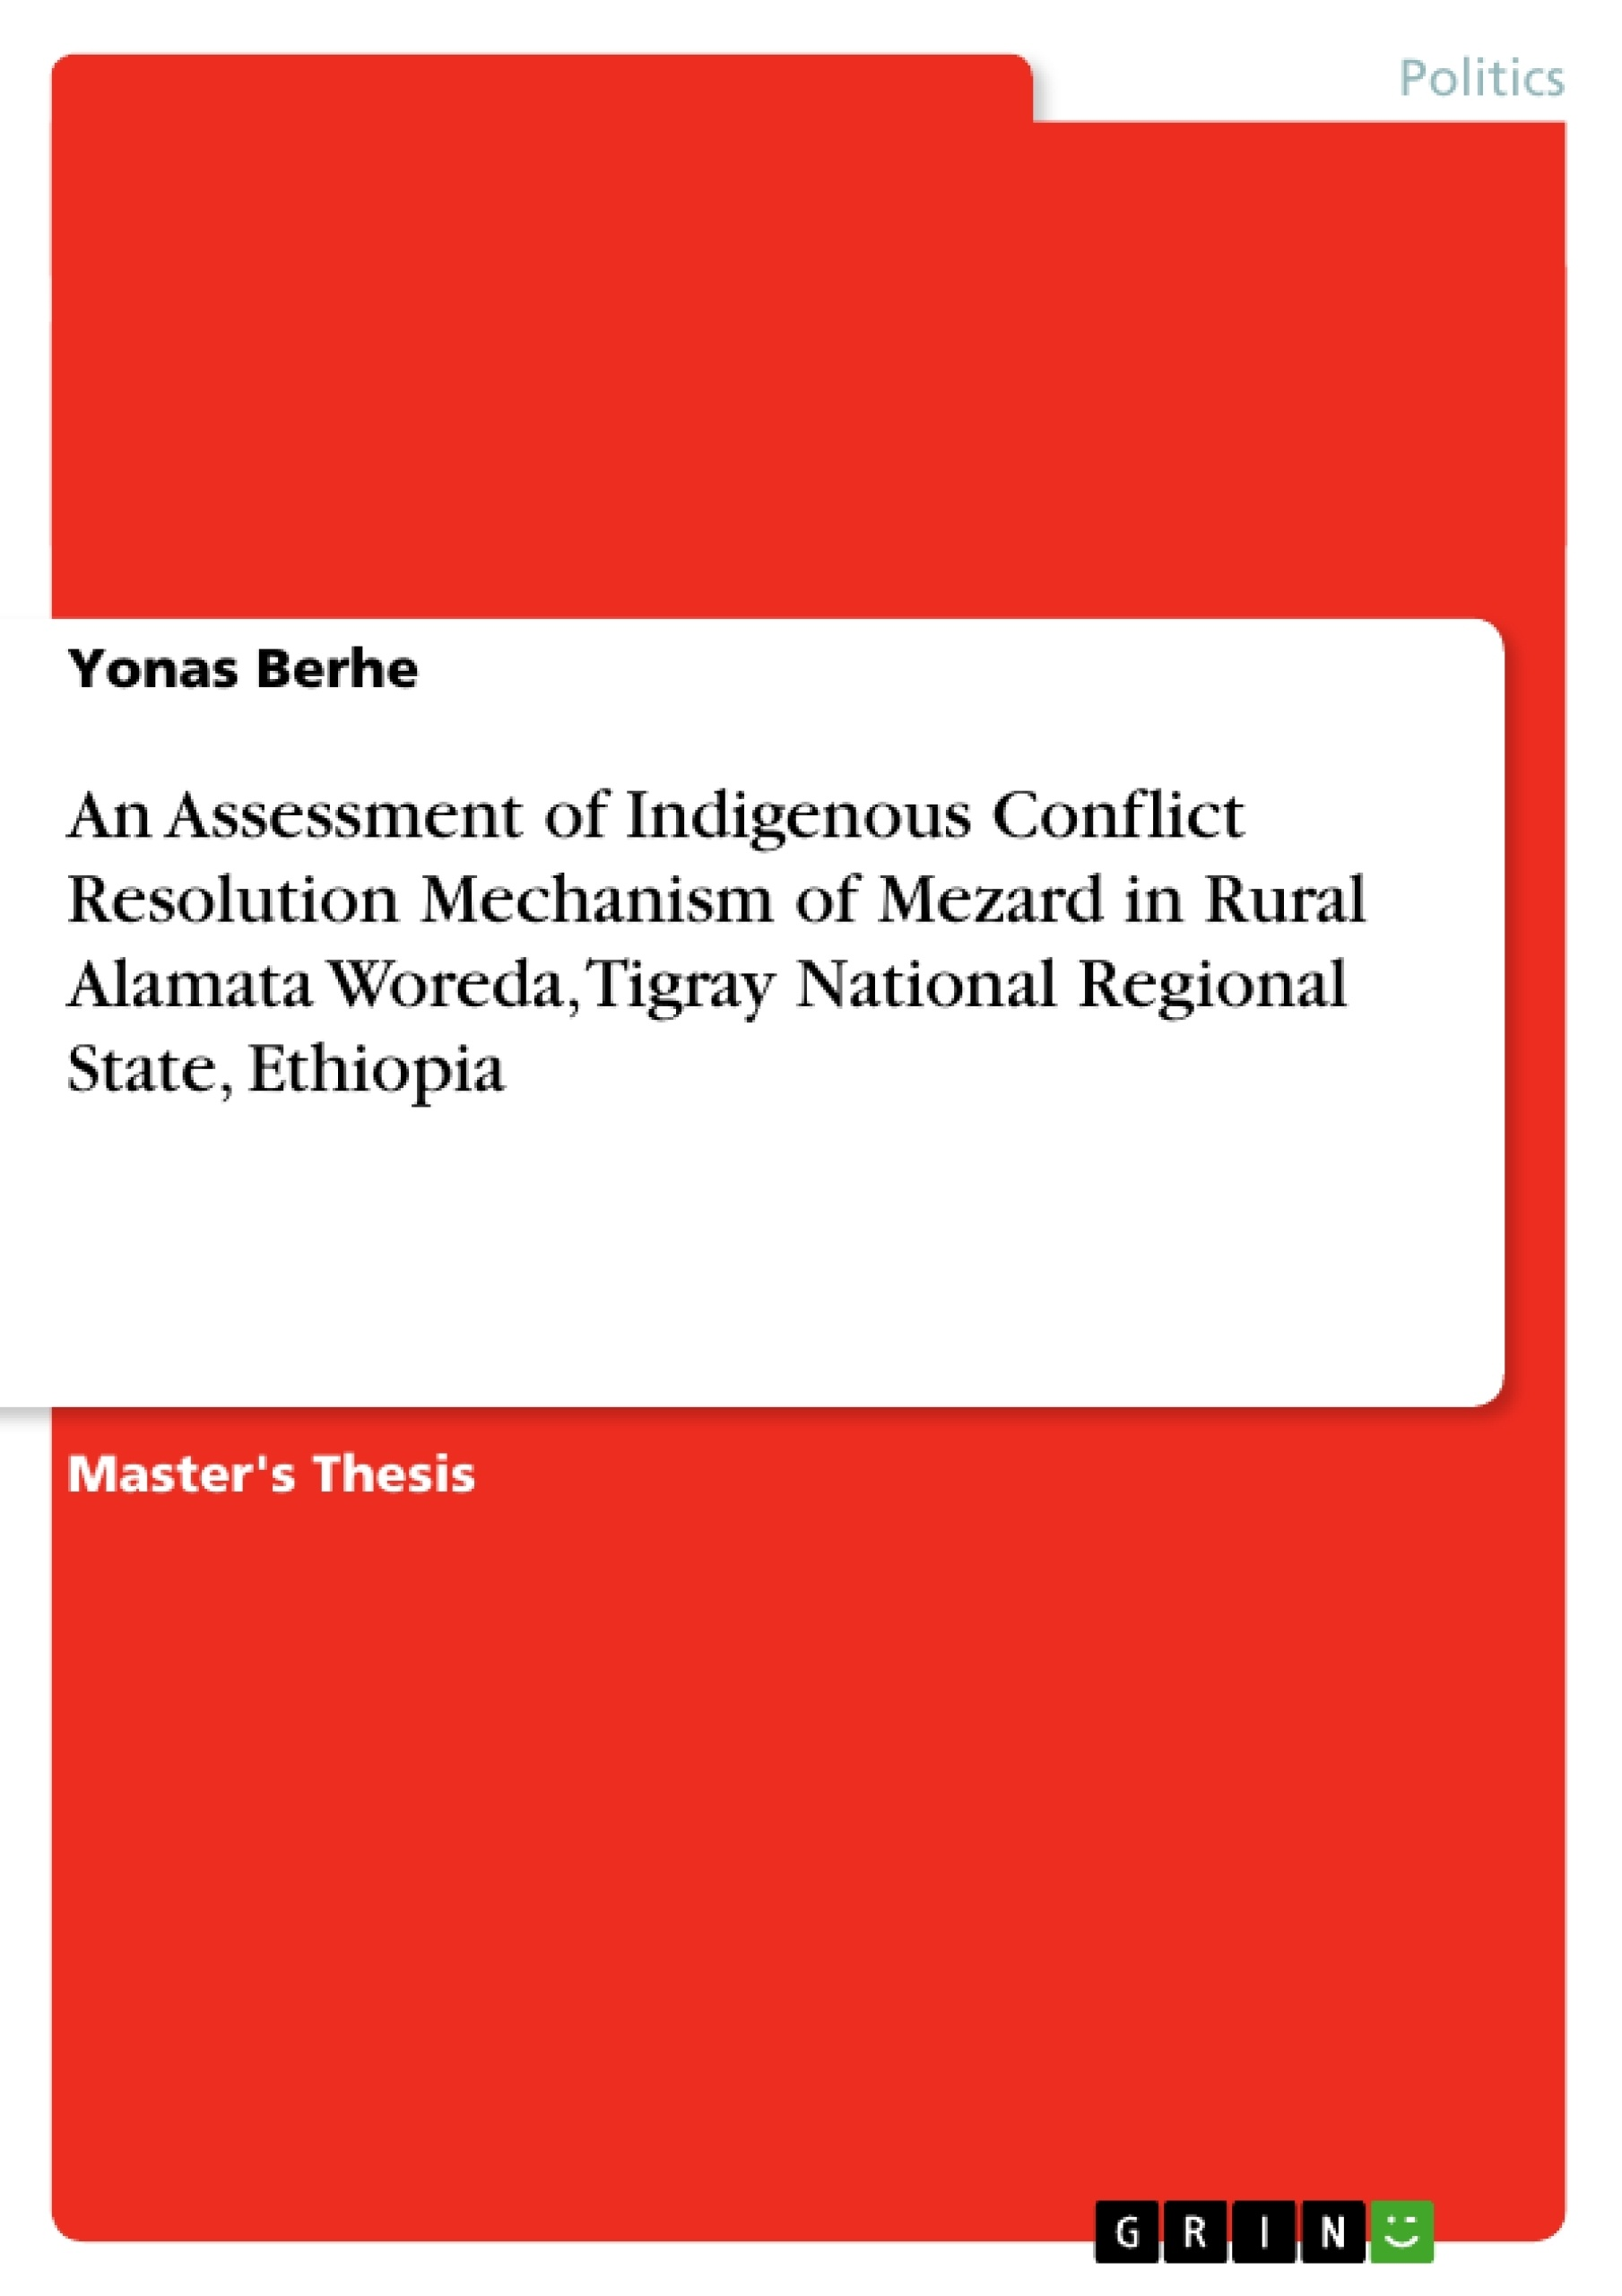 GRIN - An Assessment of Indigenous Conflict Resolution Mechanism of Mezard  in Rural Alamata Woreda, Tigray National Regional State, Ethiopia